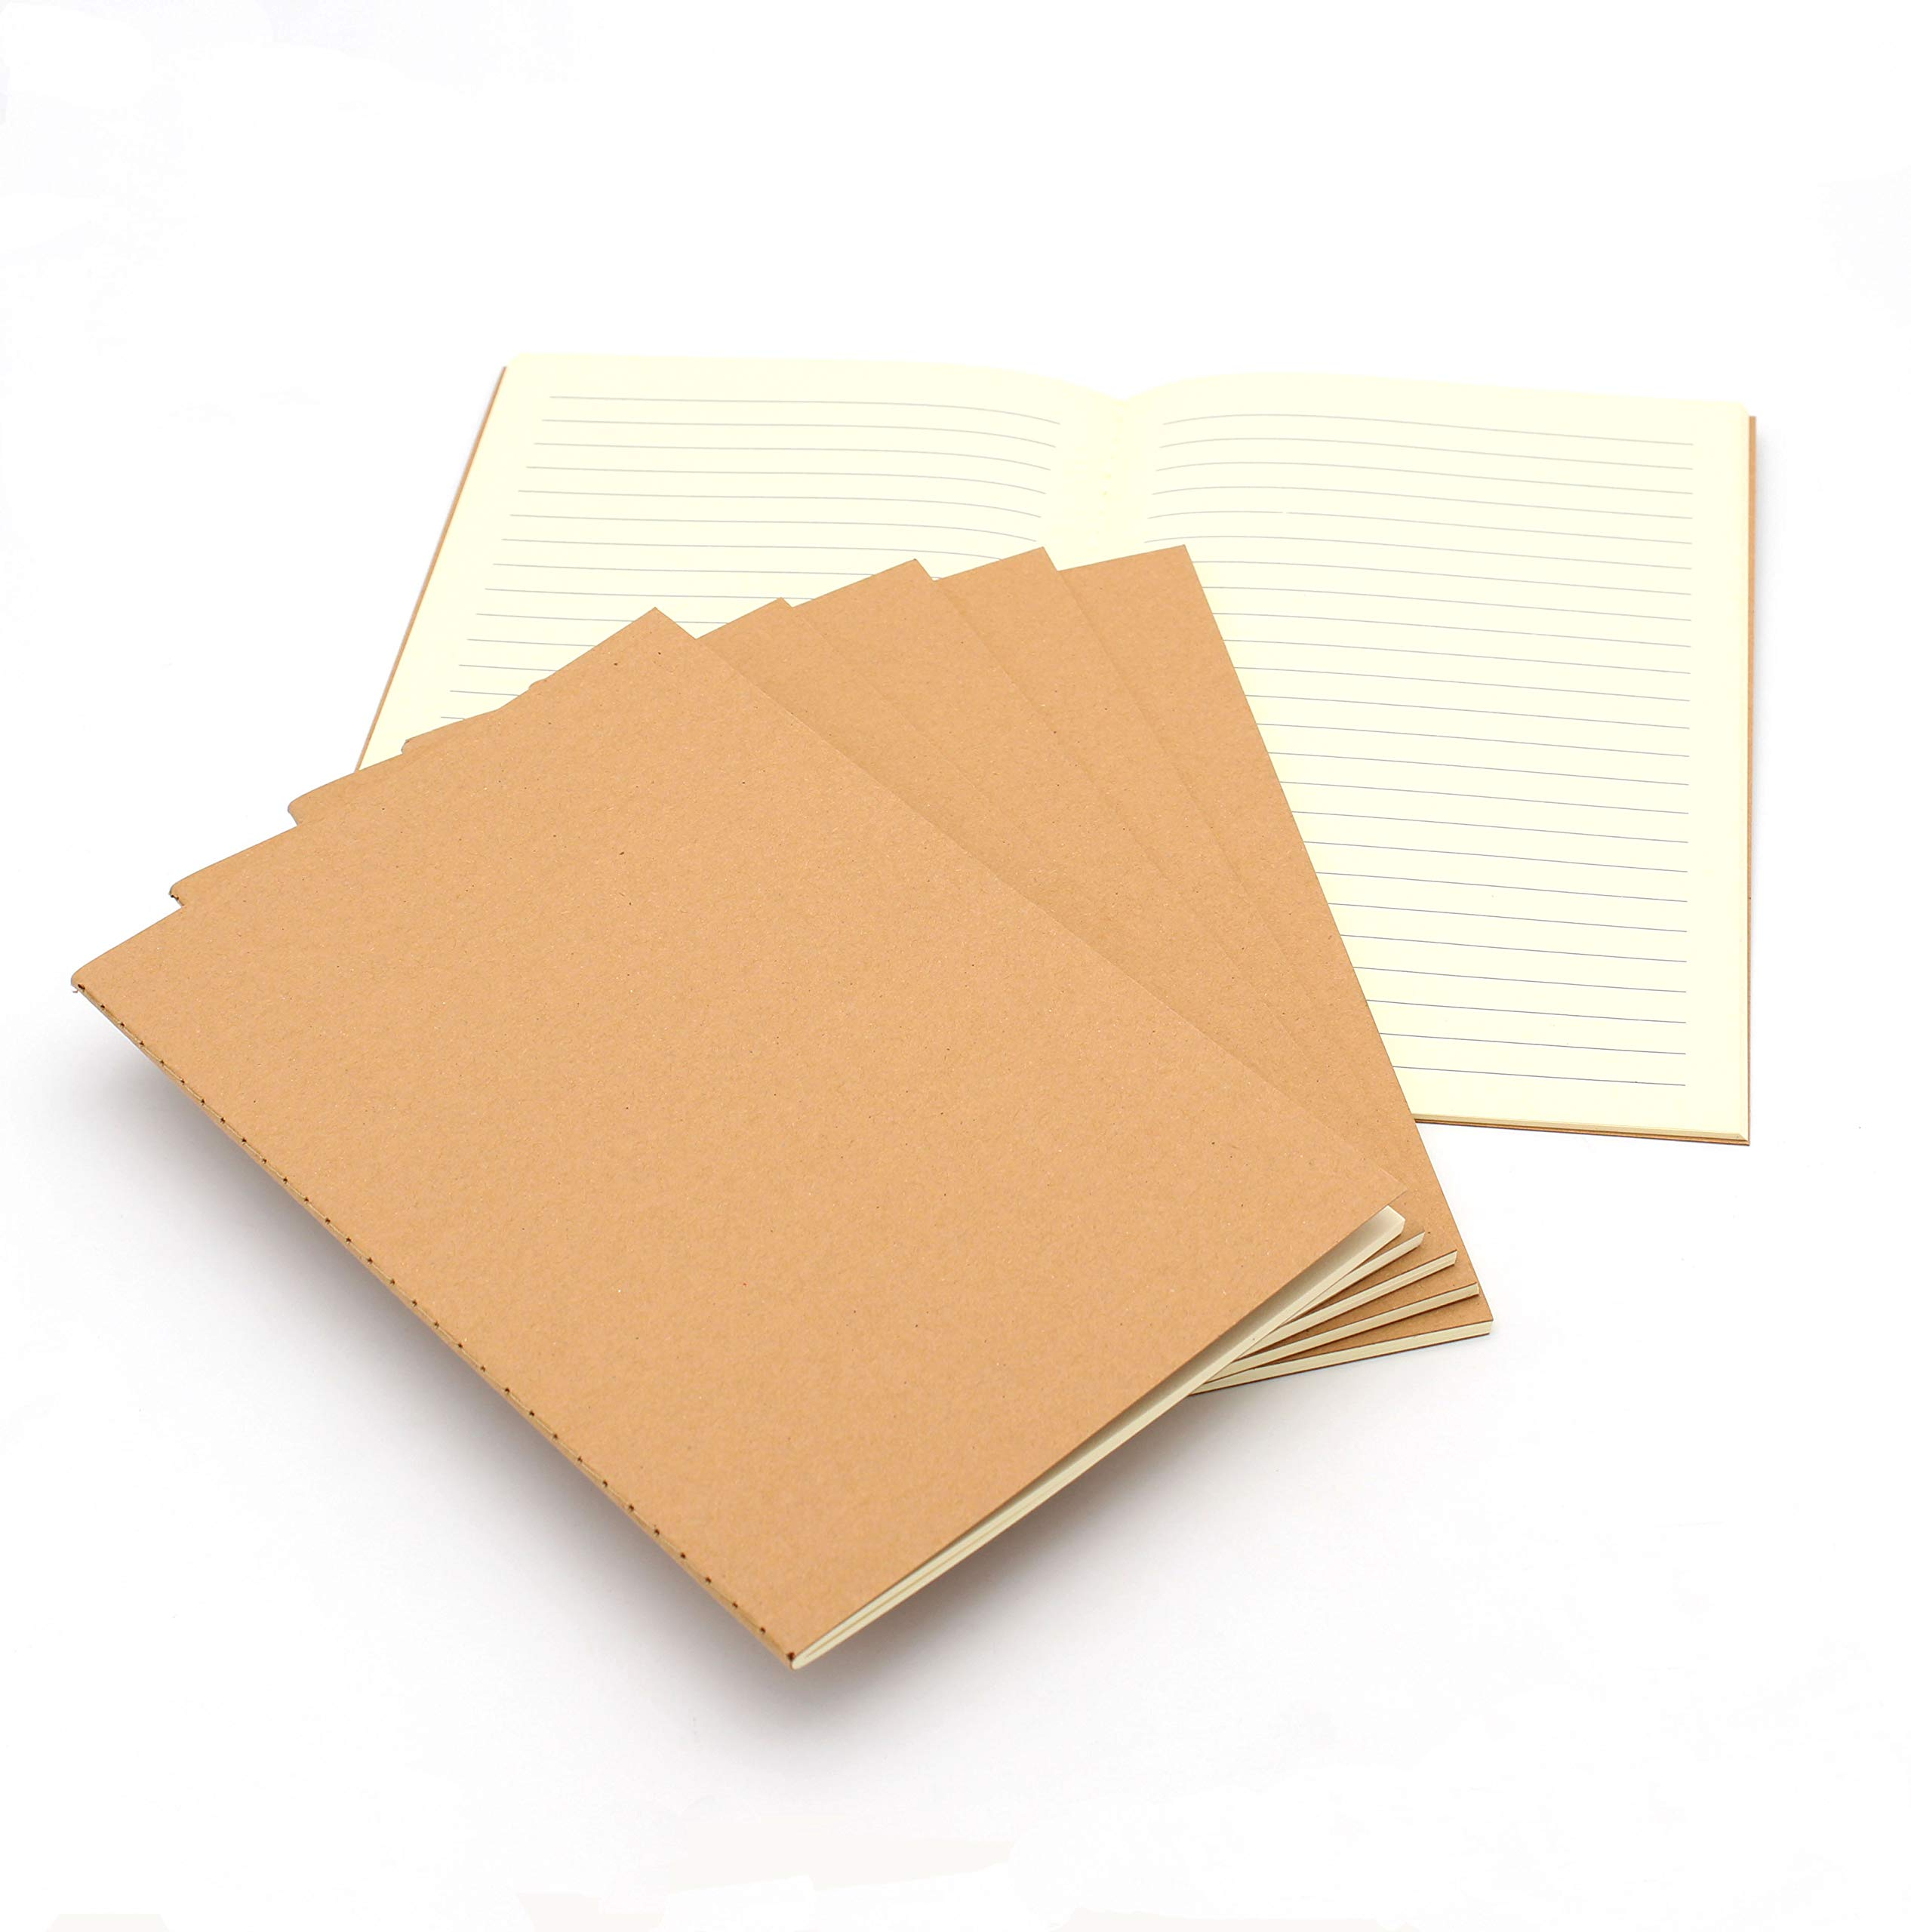 Tueascallk Travel Journal, Kraft Brown Soft Cover Notebook, A5 Specifications(5.5'' x 8.3''), College Ruled Paper,Row Spacing 0.3'', 60 Pages/30 Sheets, 6 Packs